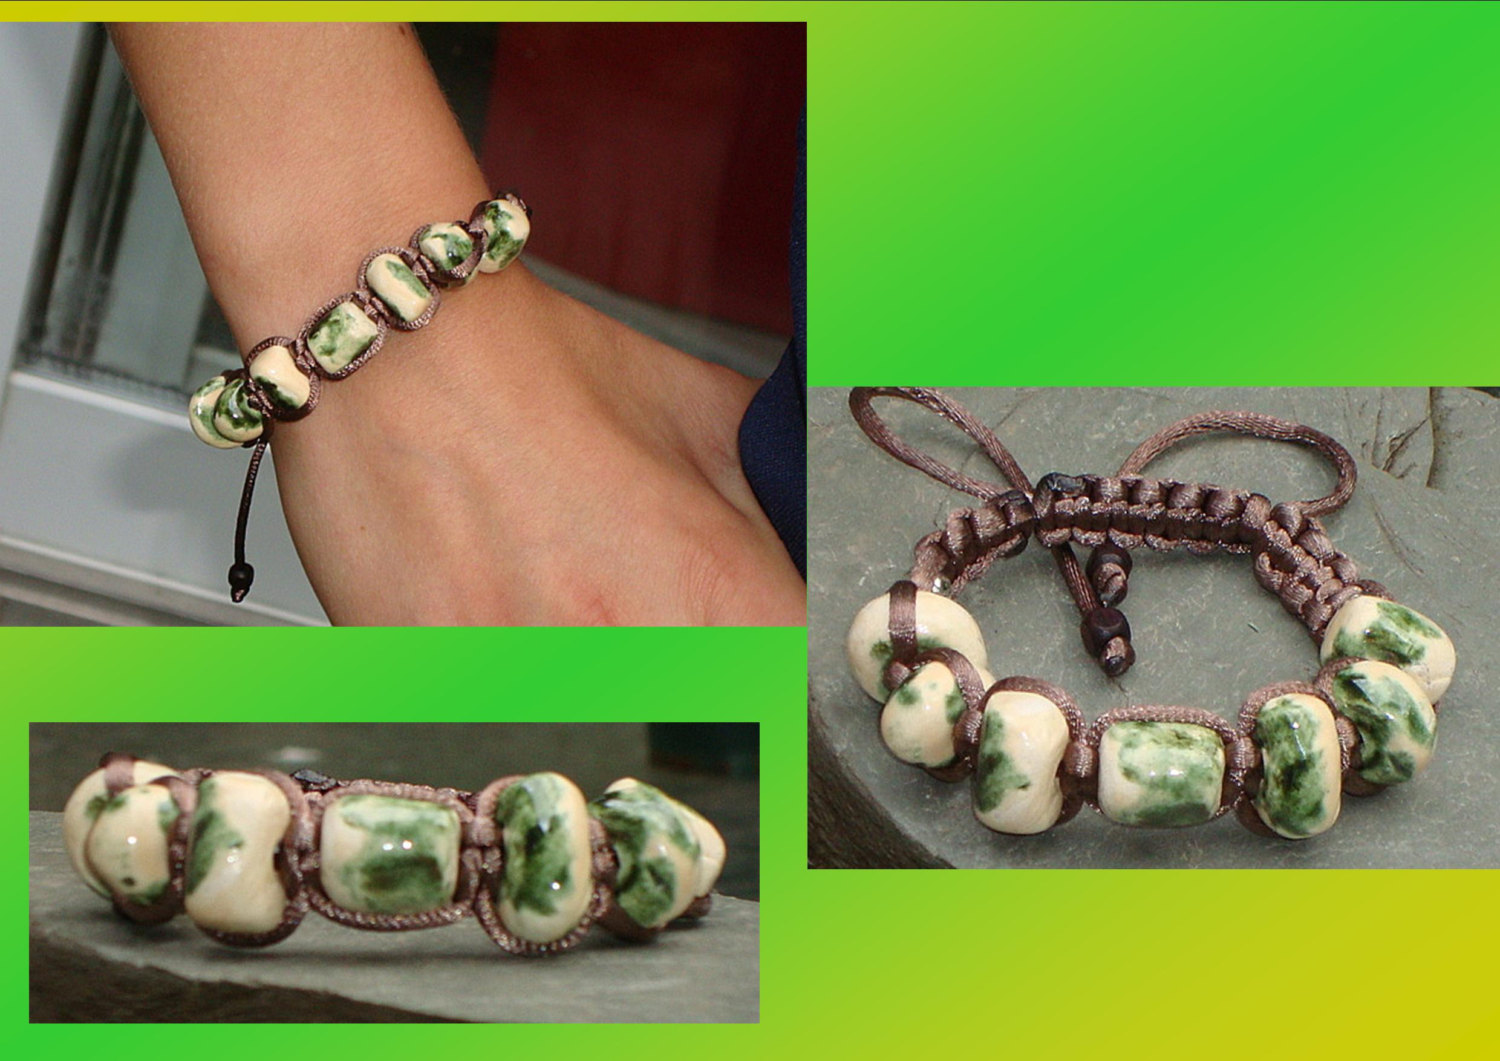 Molted Organic Green Ceramic Bracelet Beads Bali Tibetan Shamballa Beaded Woven Jewelry